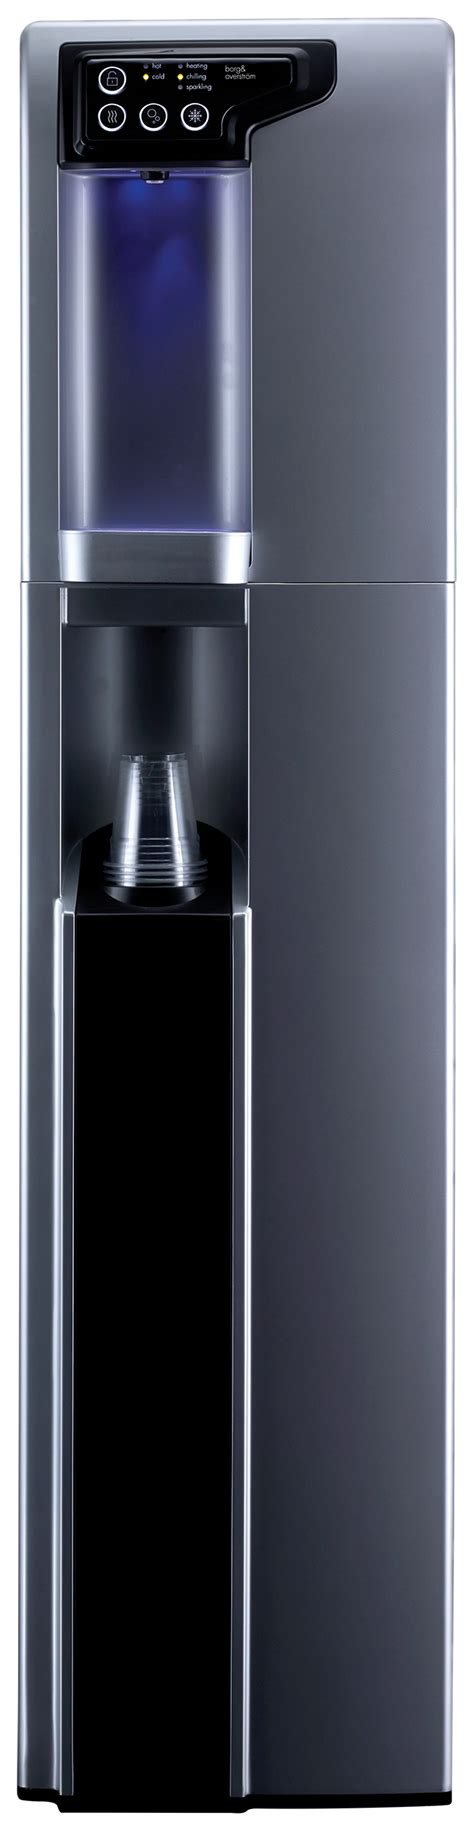 Plumbed Water Cooler by Borg Overstrom B4 Plumbed Water Cooler Pou Countertop